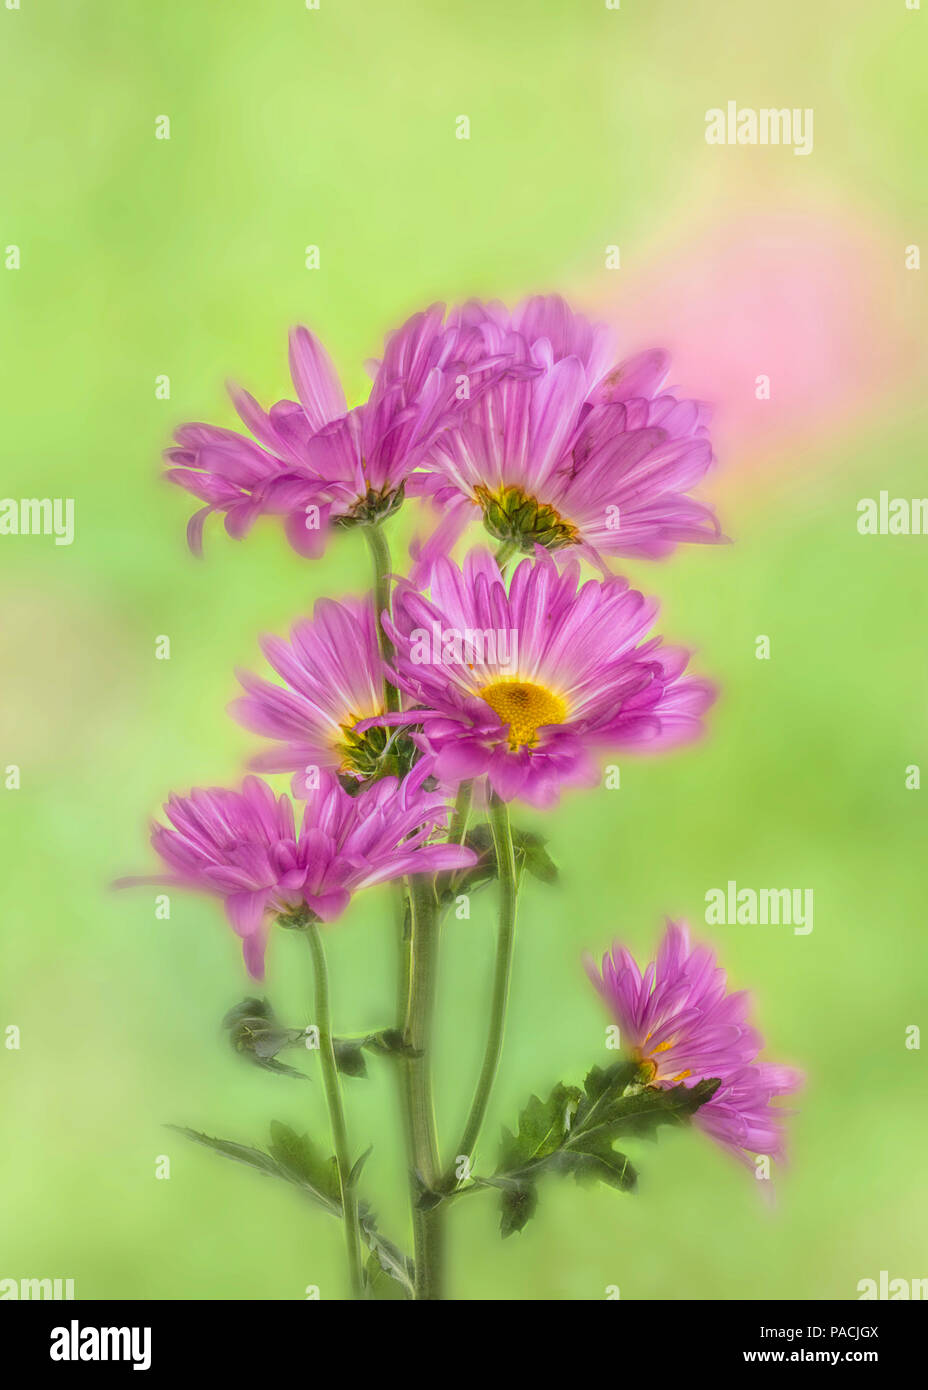 Chrysanthemums or Mums against a green background - Stock Image